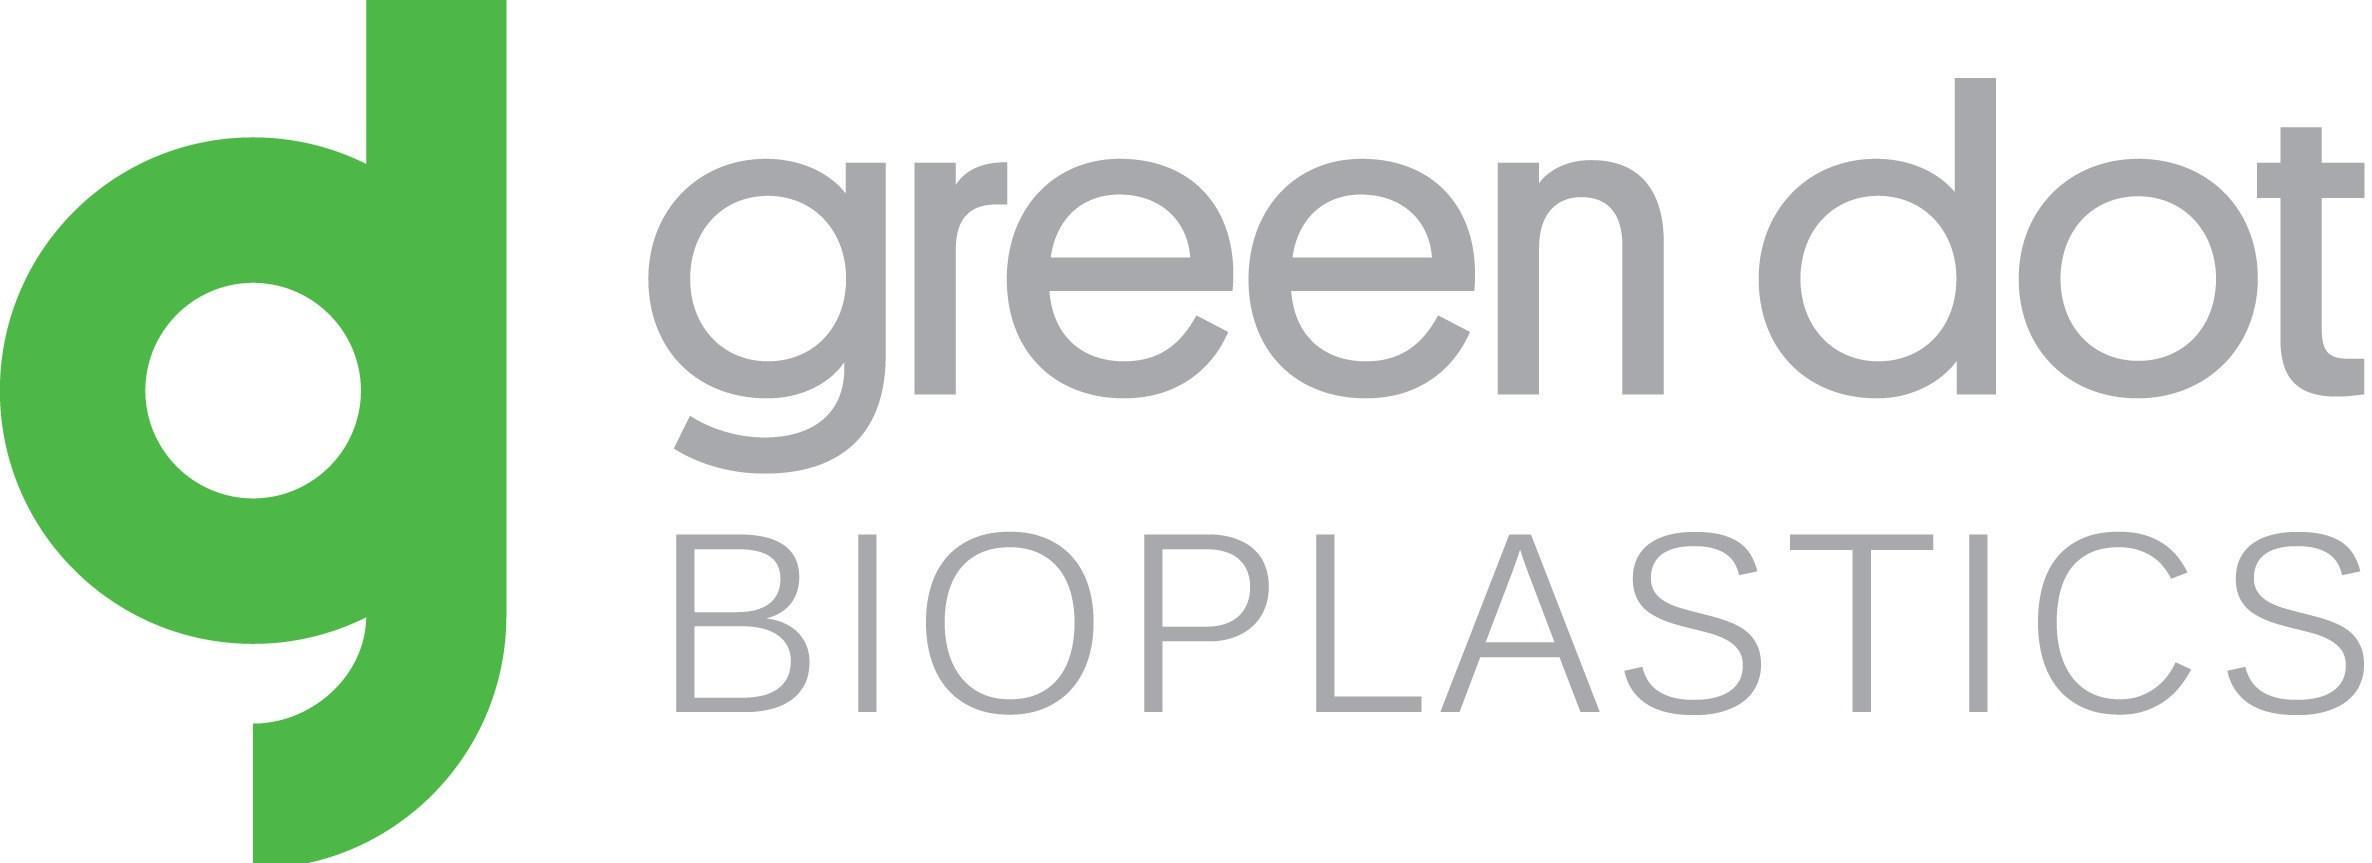 Green Dot Bioplastics secures $6.5M to expand portfolio, increase production